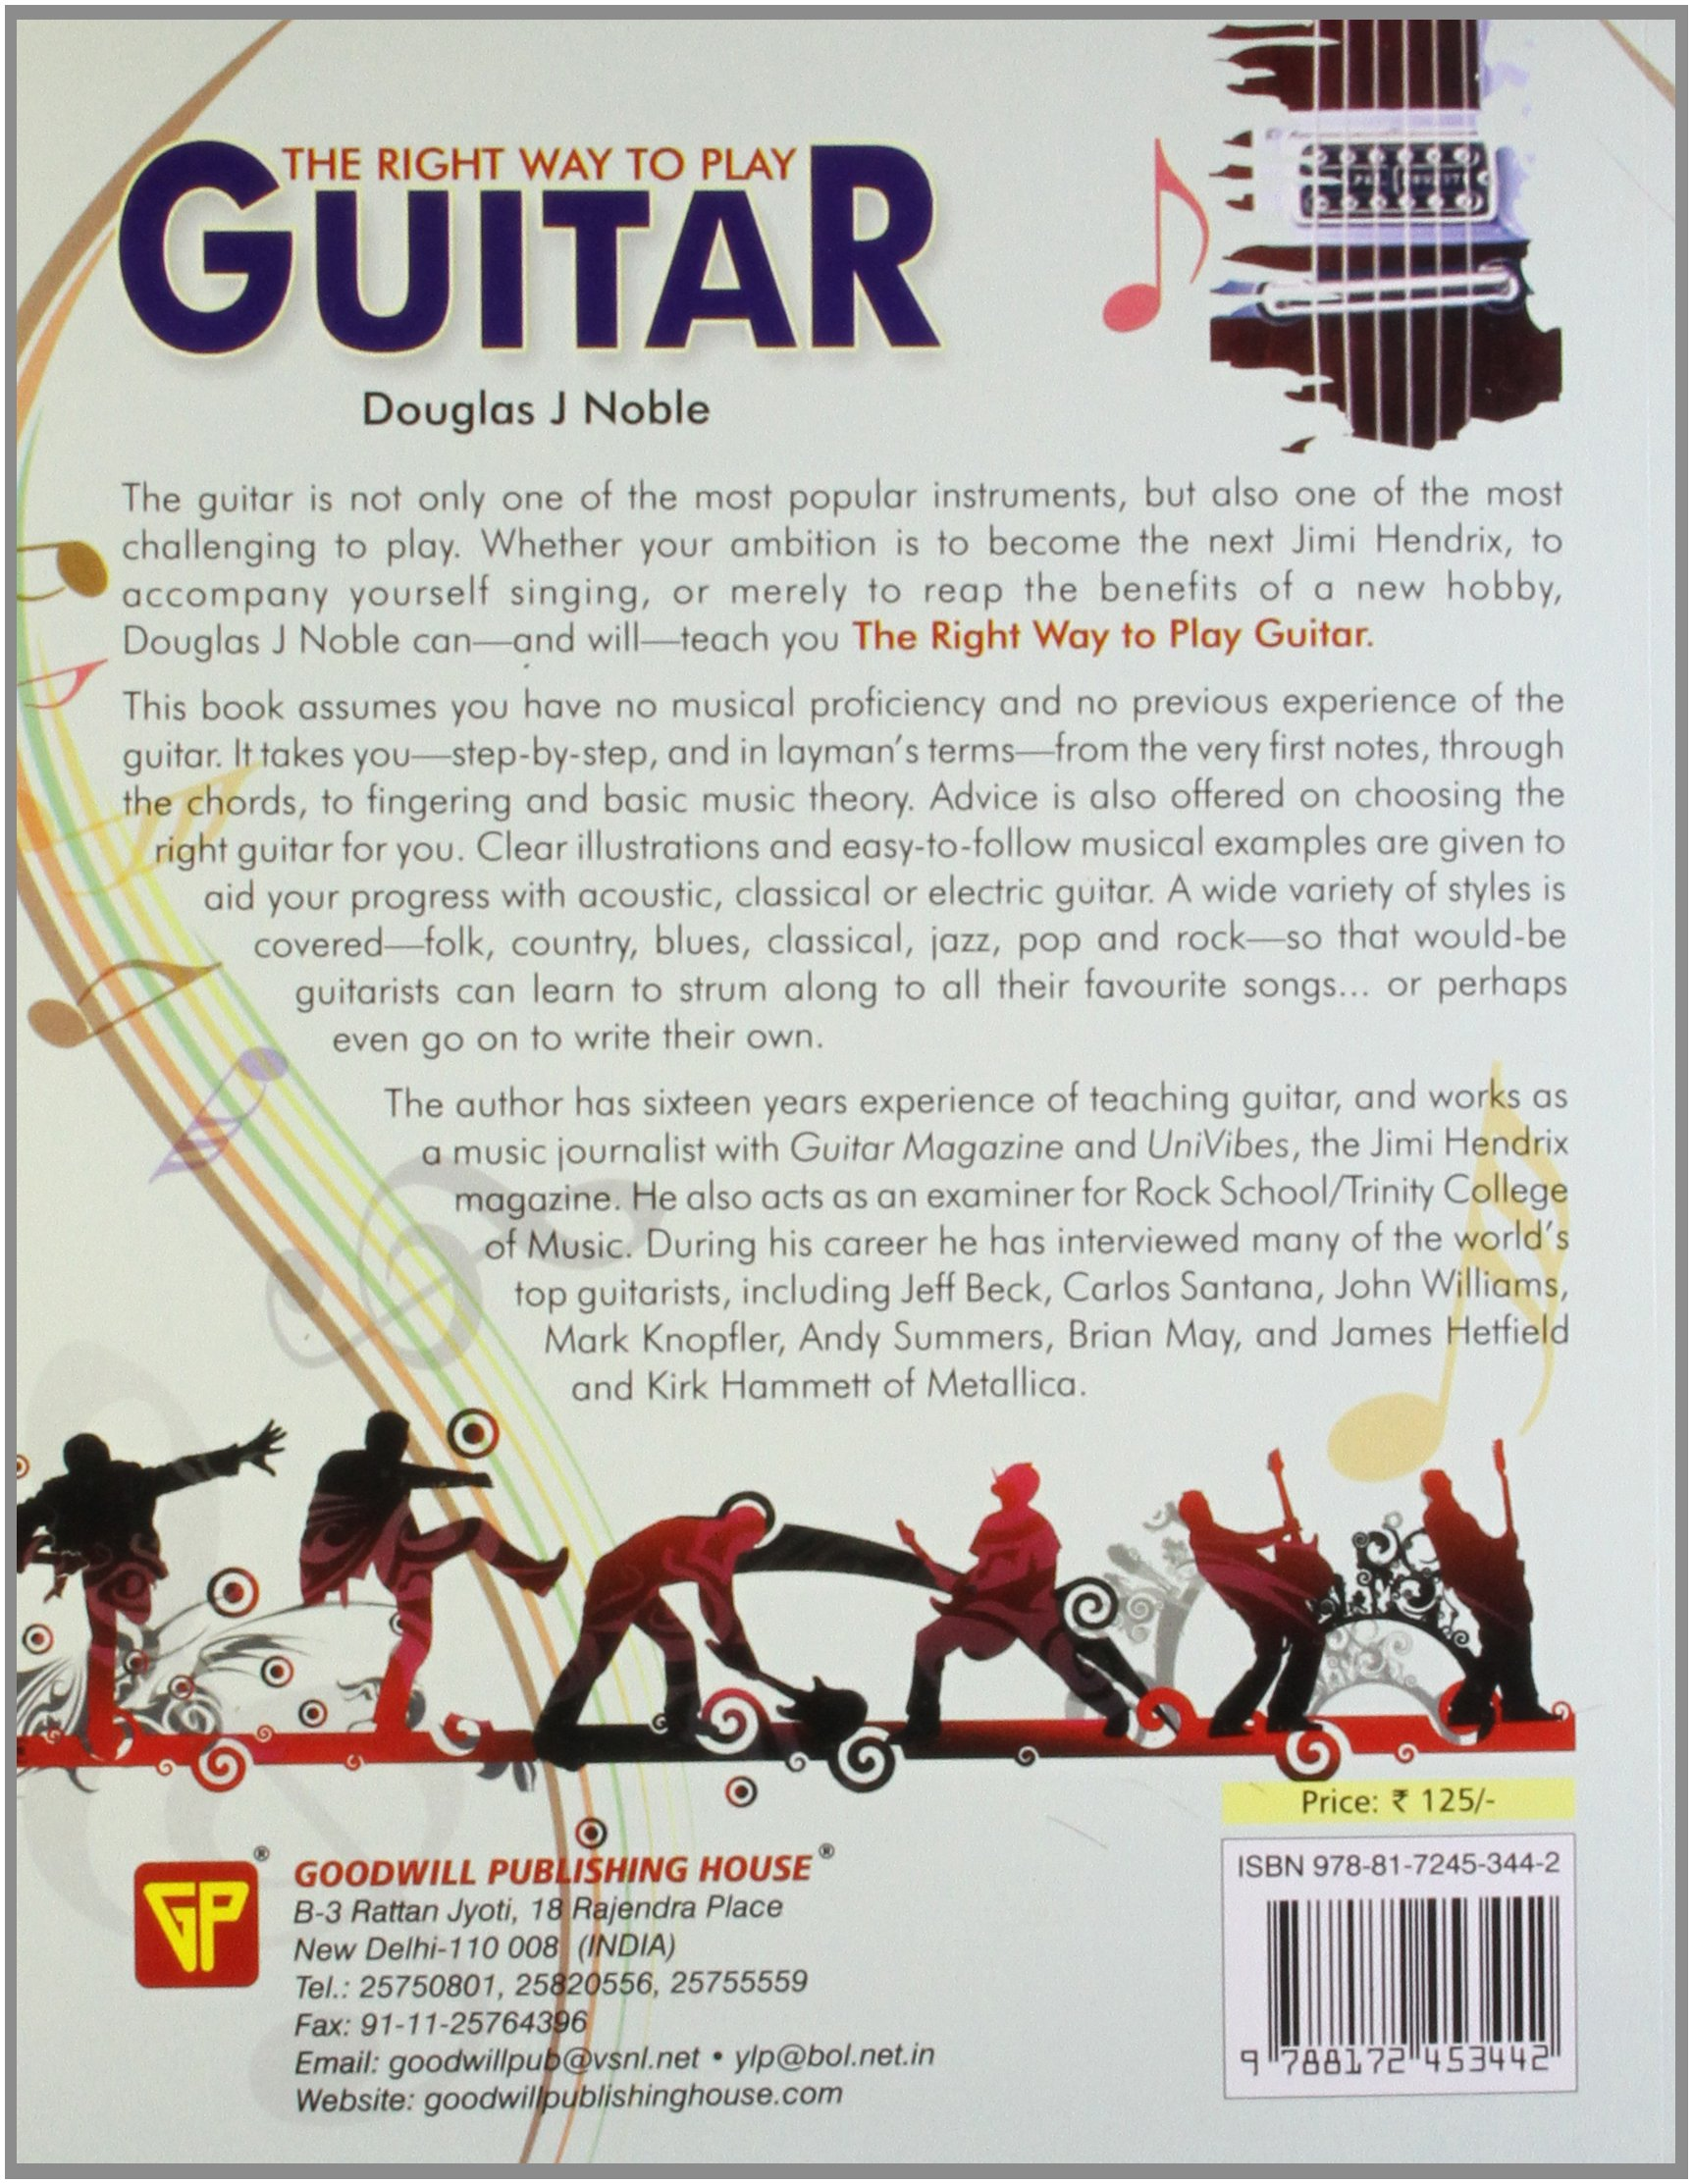 essay on playing guitar as a hobby 91 121 113 106 essay on playing guitar as a hobby